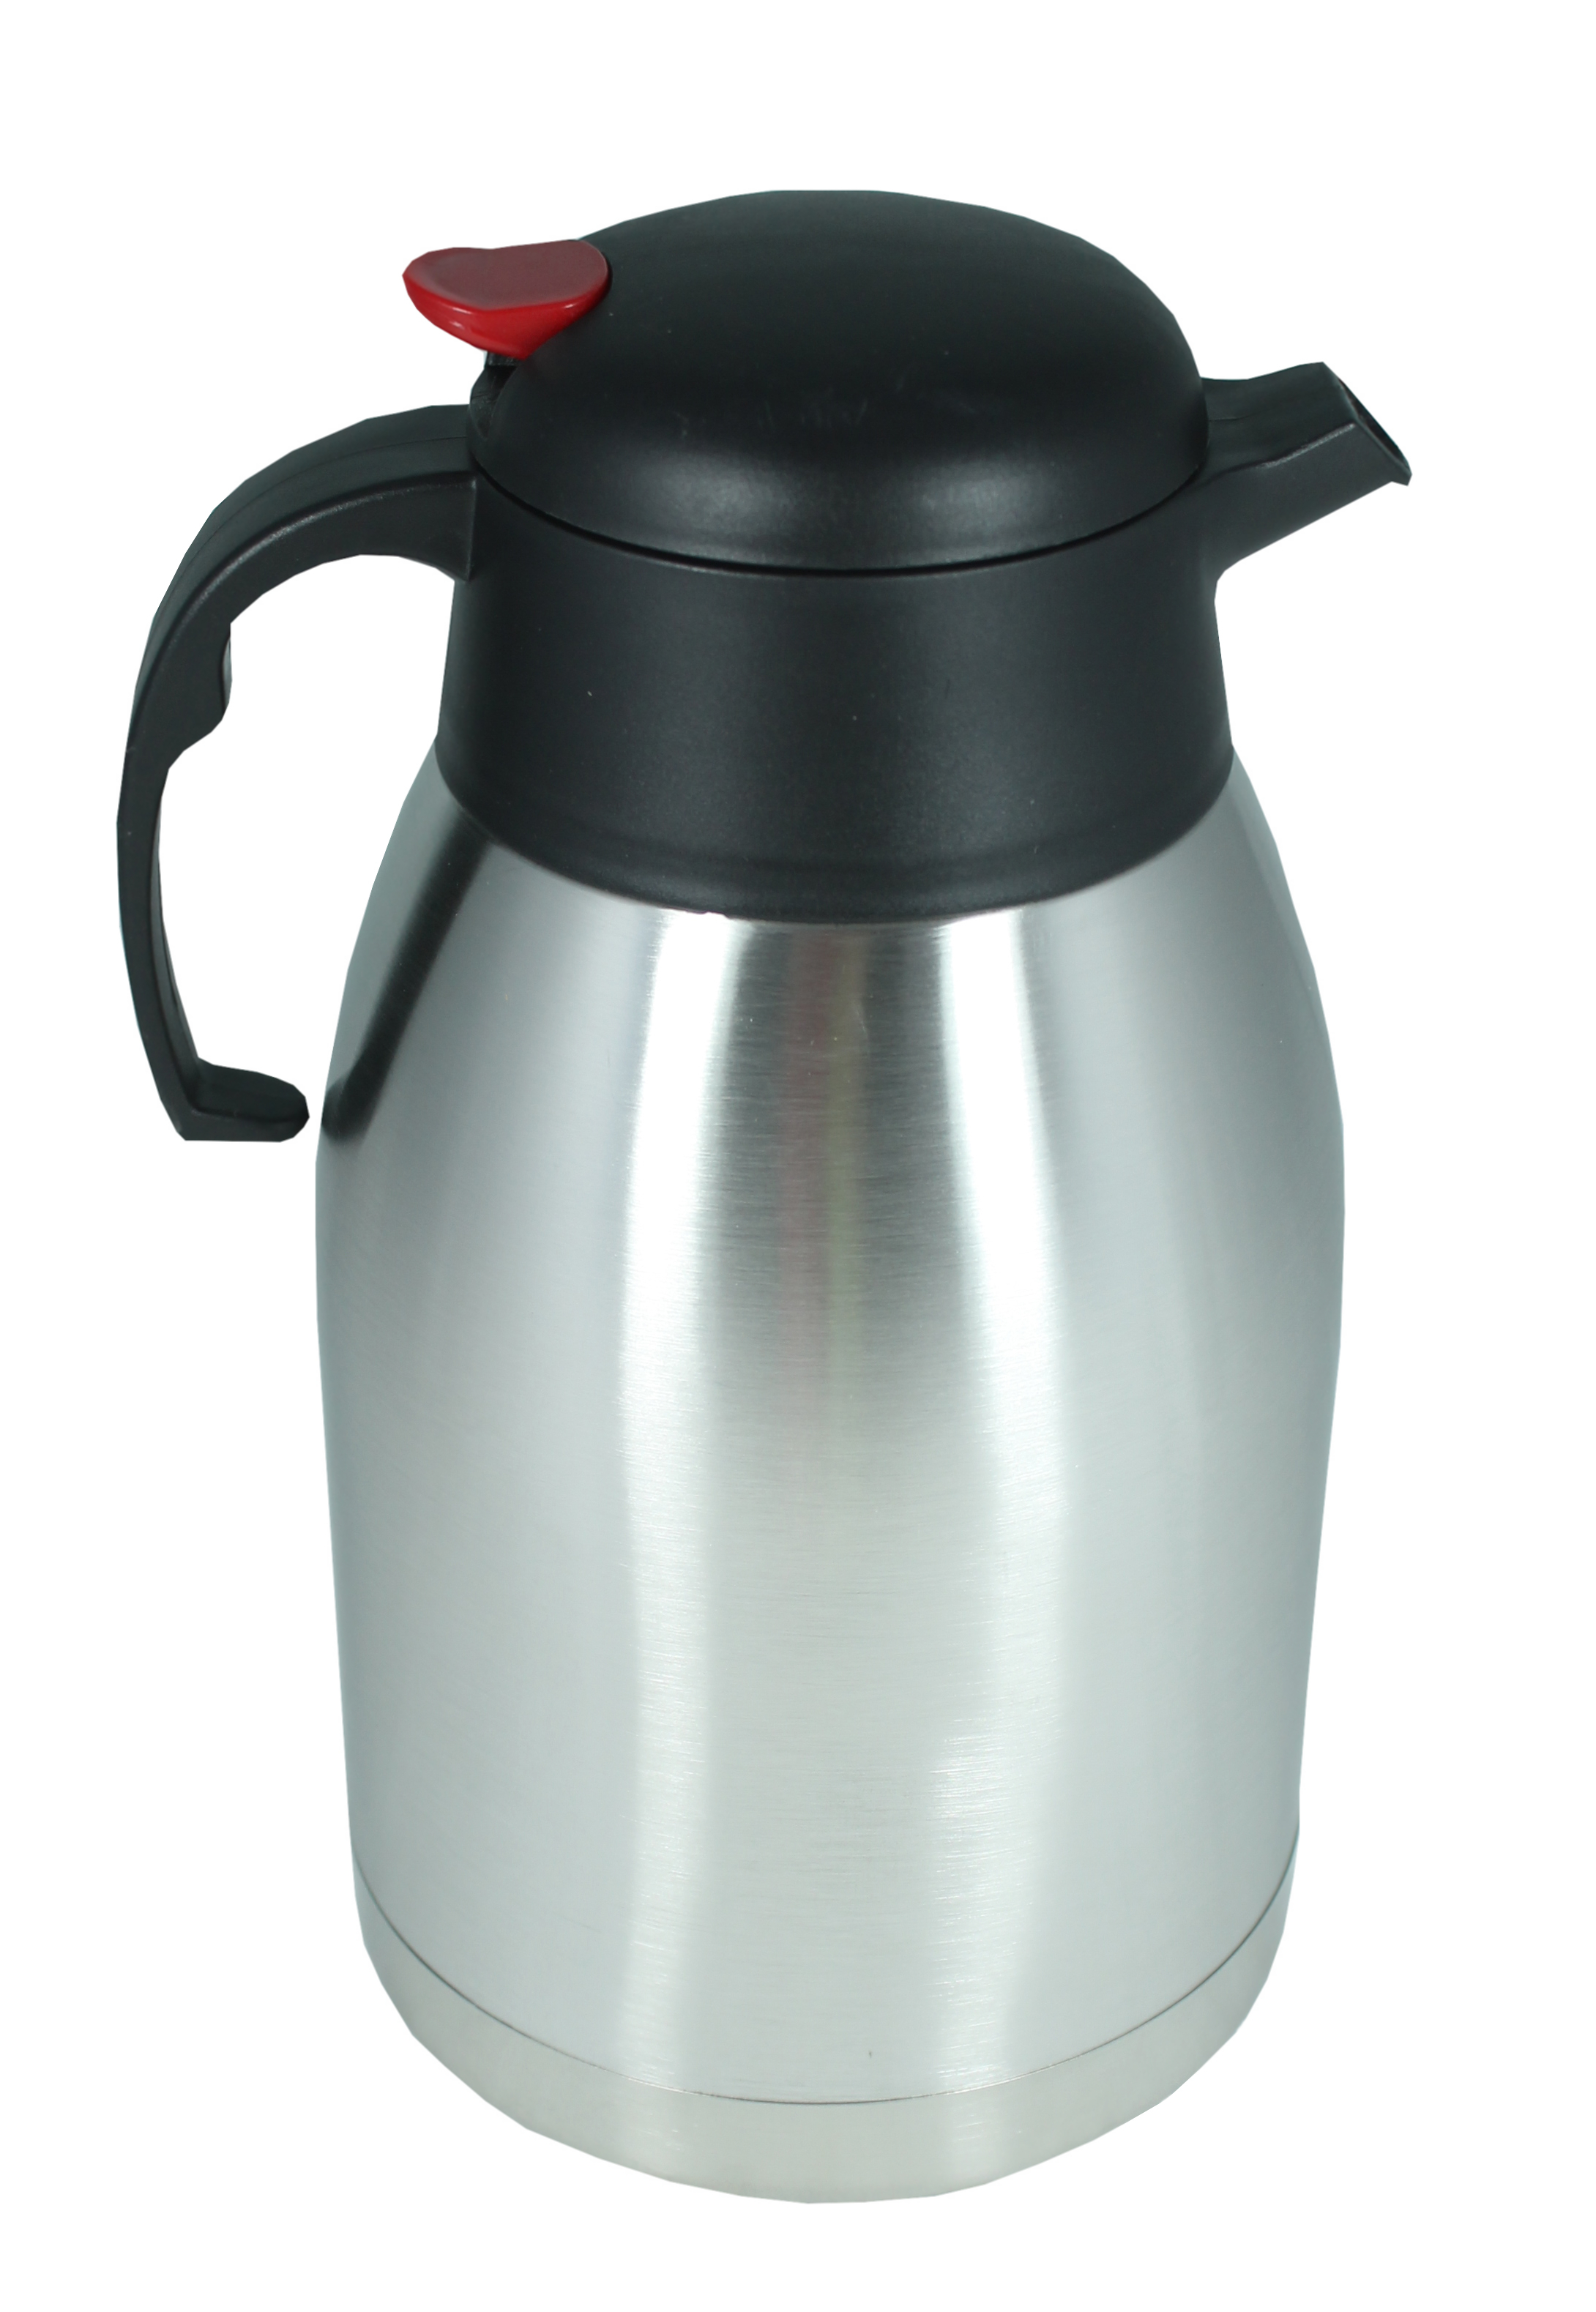 thermos inox 2 litres cruche bouteille isol e th i re iso kafeekann ebay. Black Bedroom Furniture Sets. Home Design Ideas